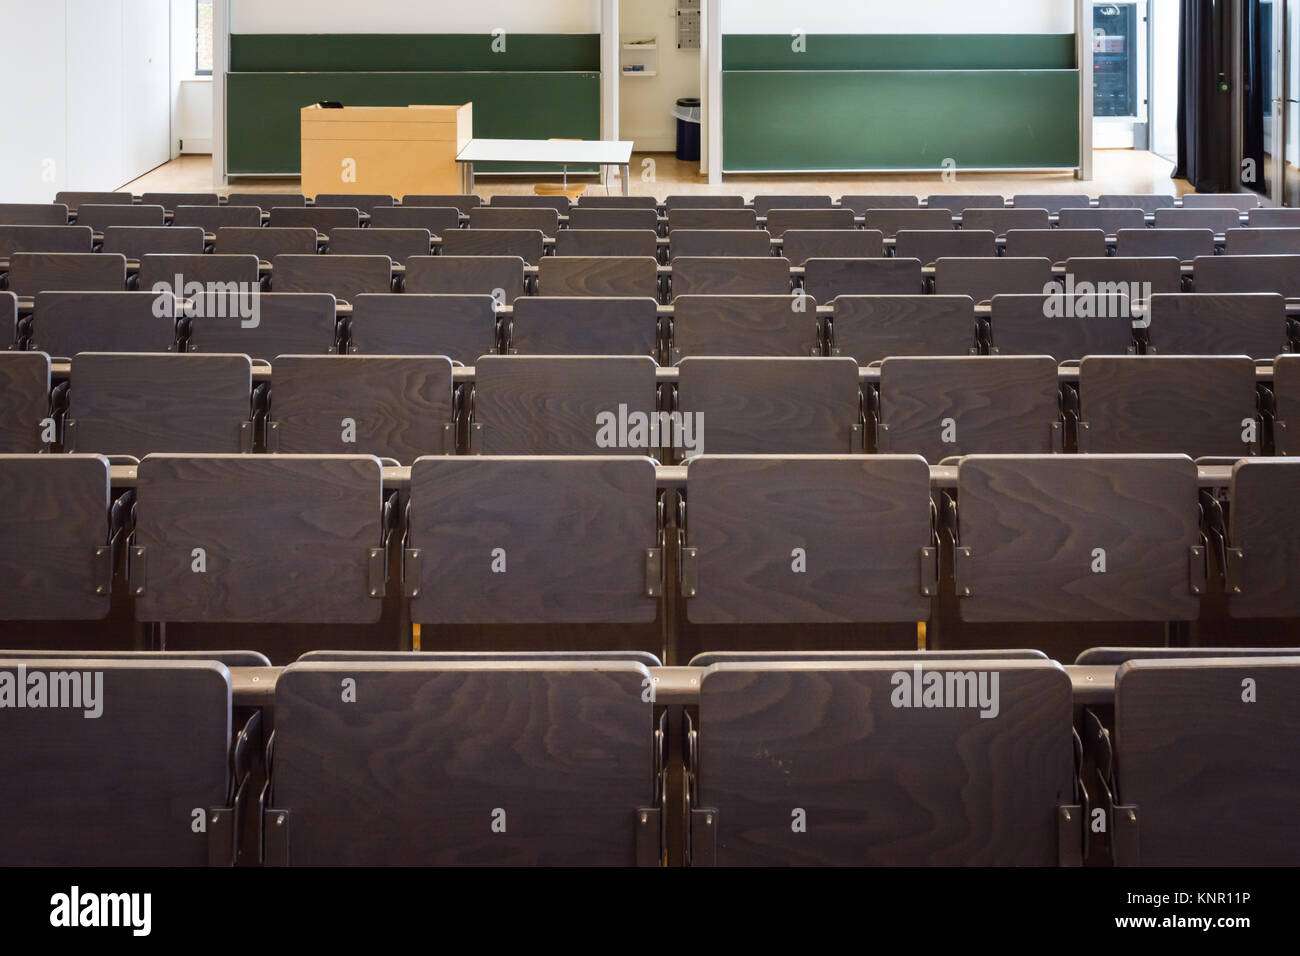 University Lecture Hall Behind Front Chairs Rows Interior Architecture Empty Learning - Stock Image